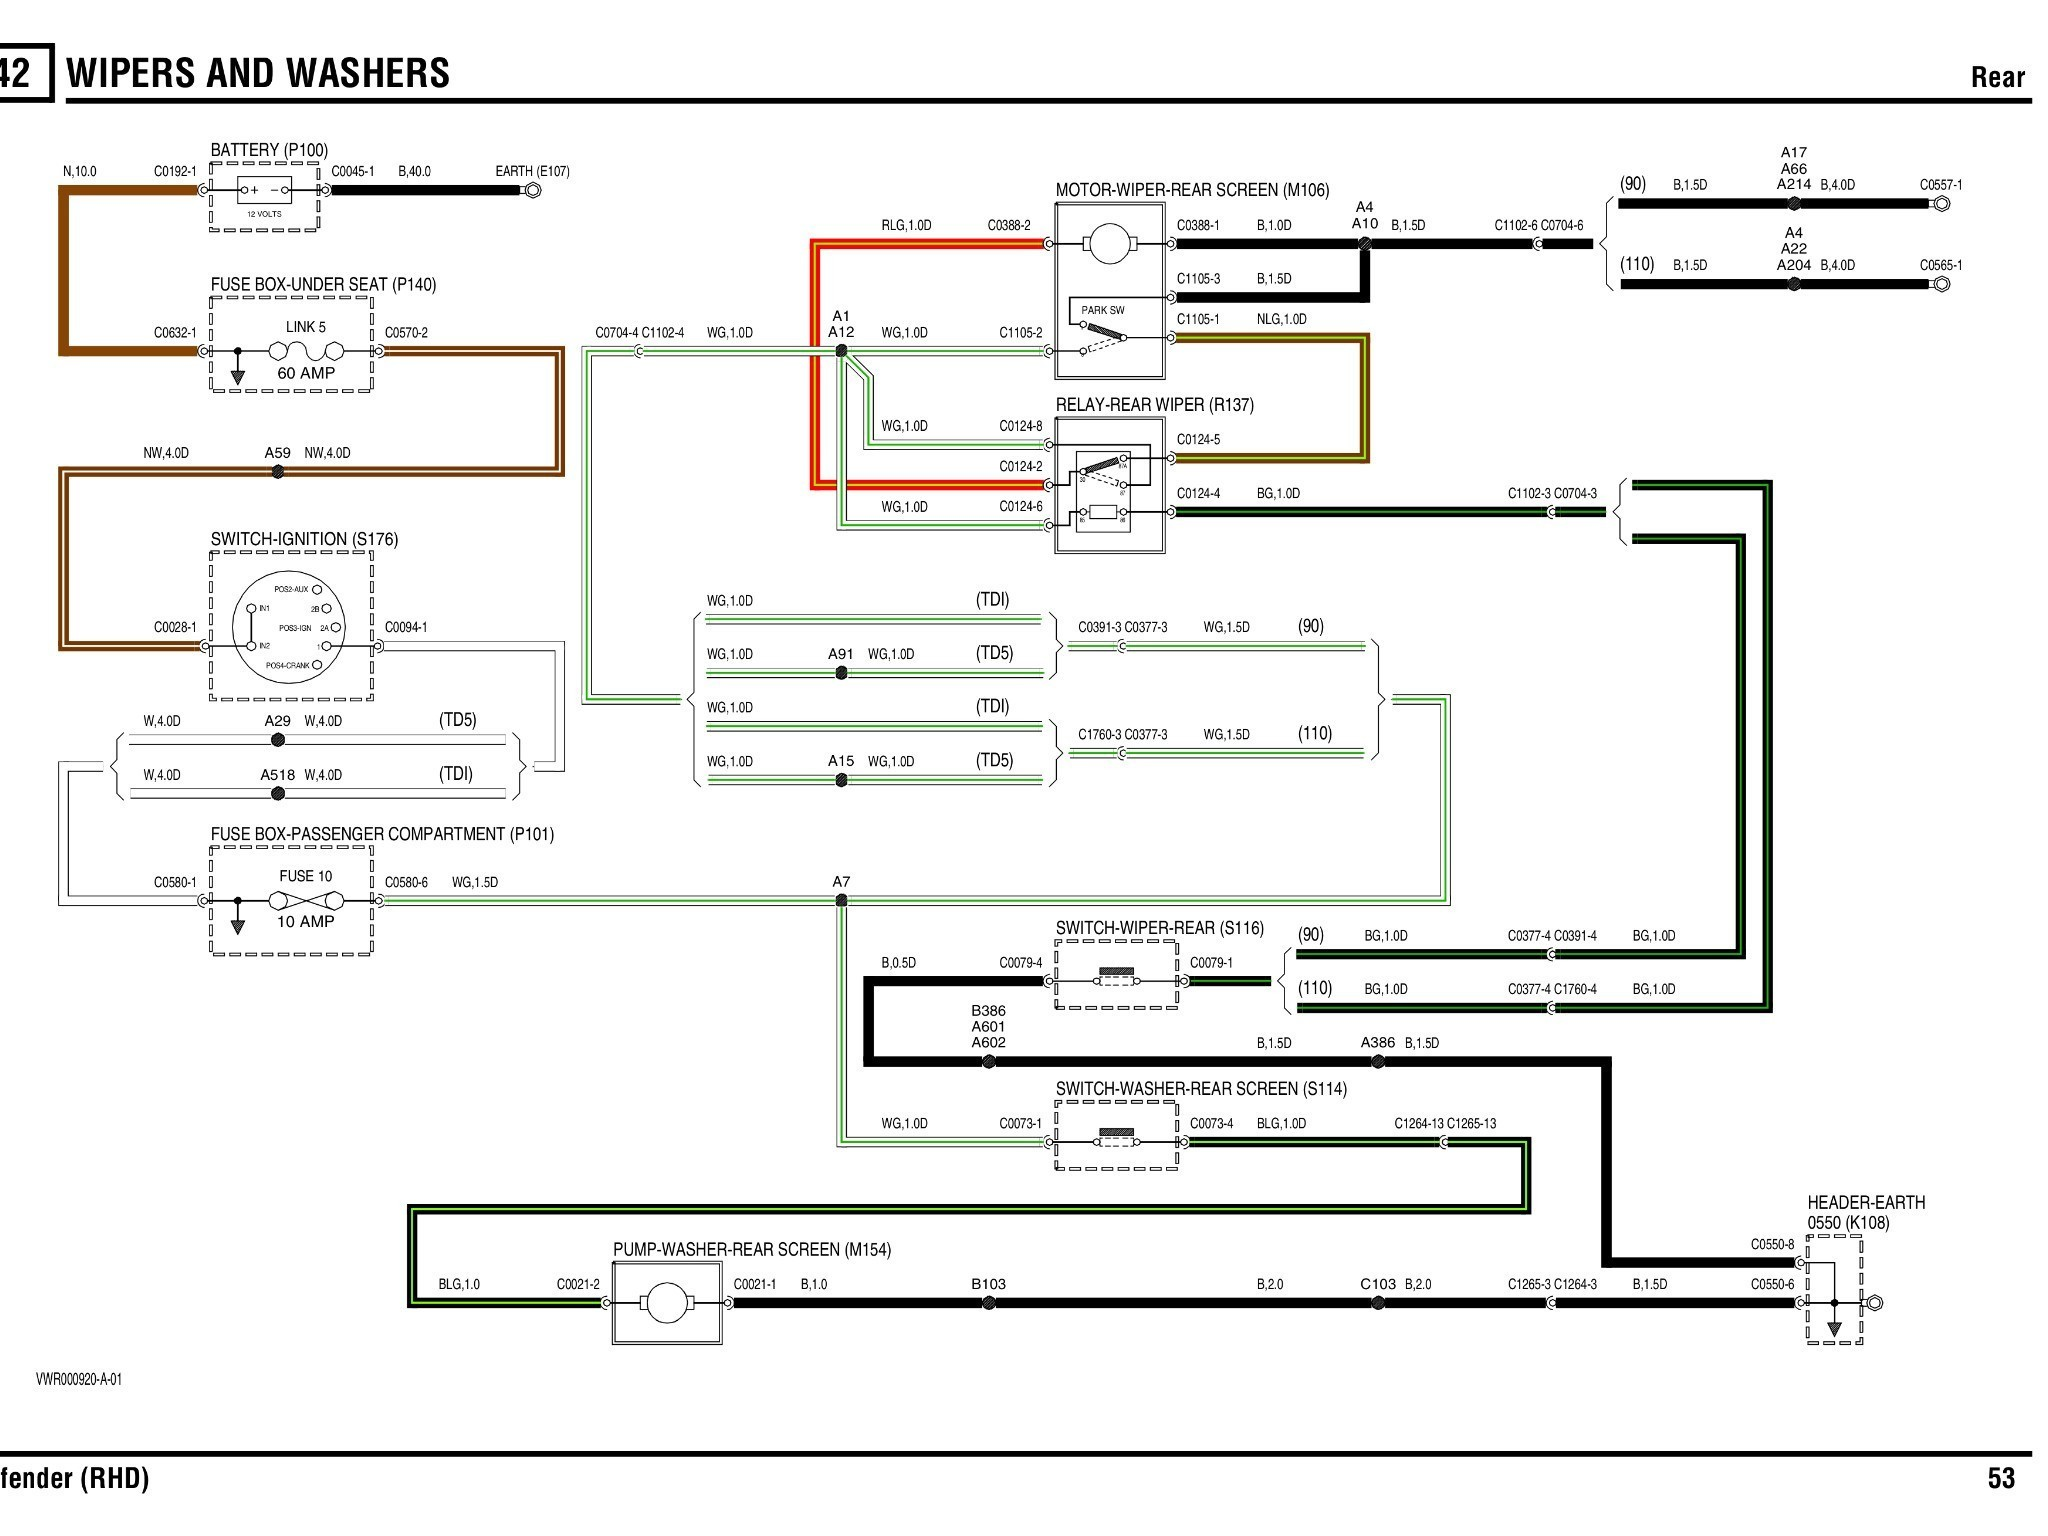 Wiring Diagram for Light with 2 Switches New Supreme Light Switch Wiring Diagram 1 Way Creativity